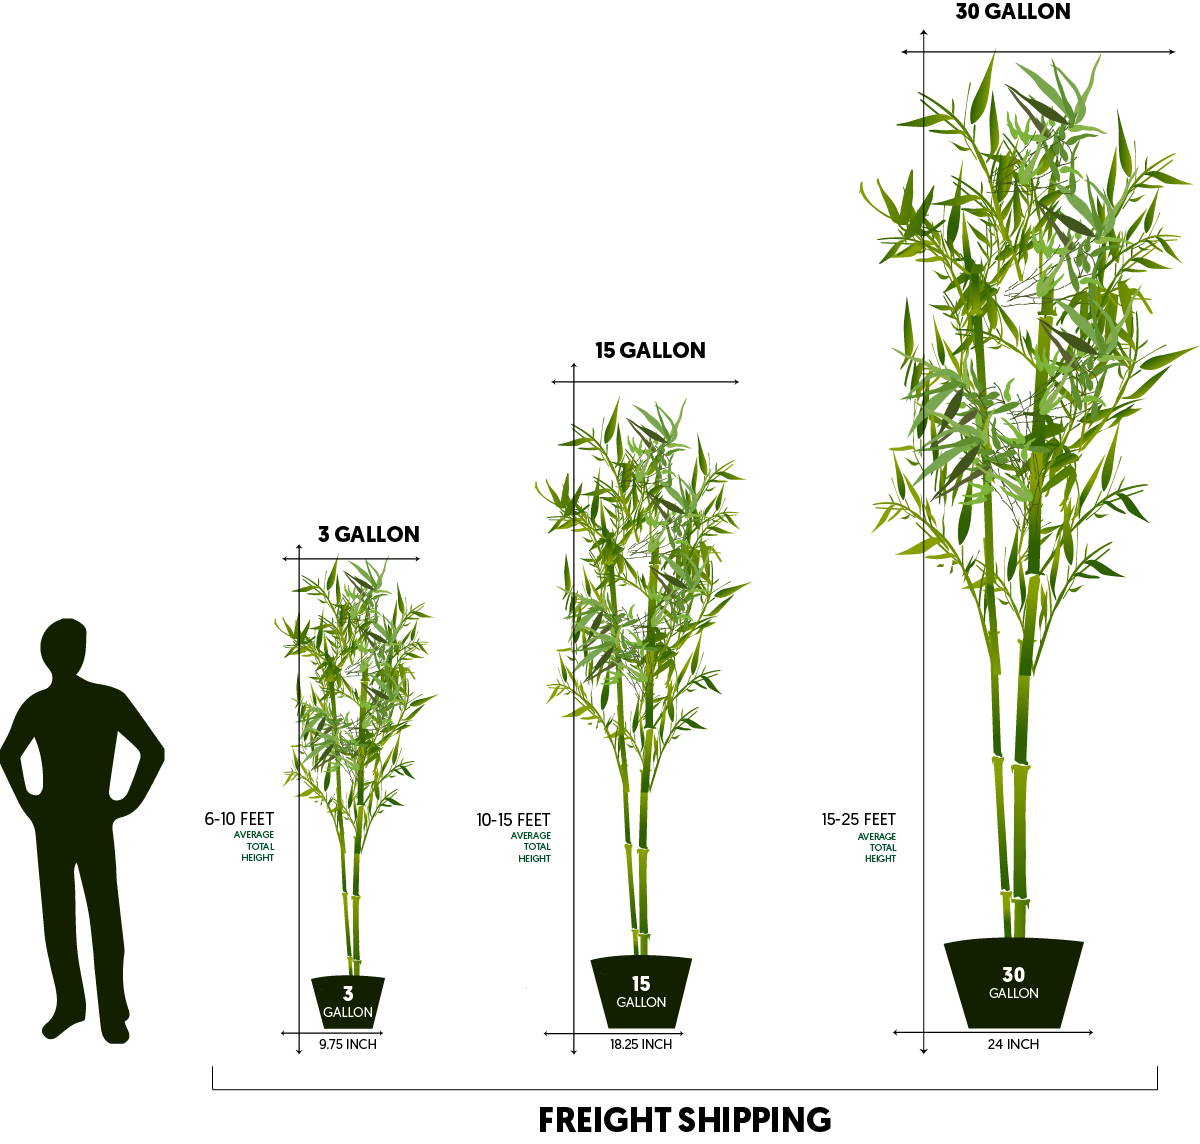 10 15 Feet Tall Bamboo 15 Gallon Lewis Bamboo